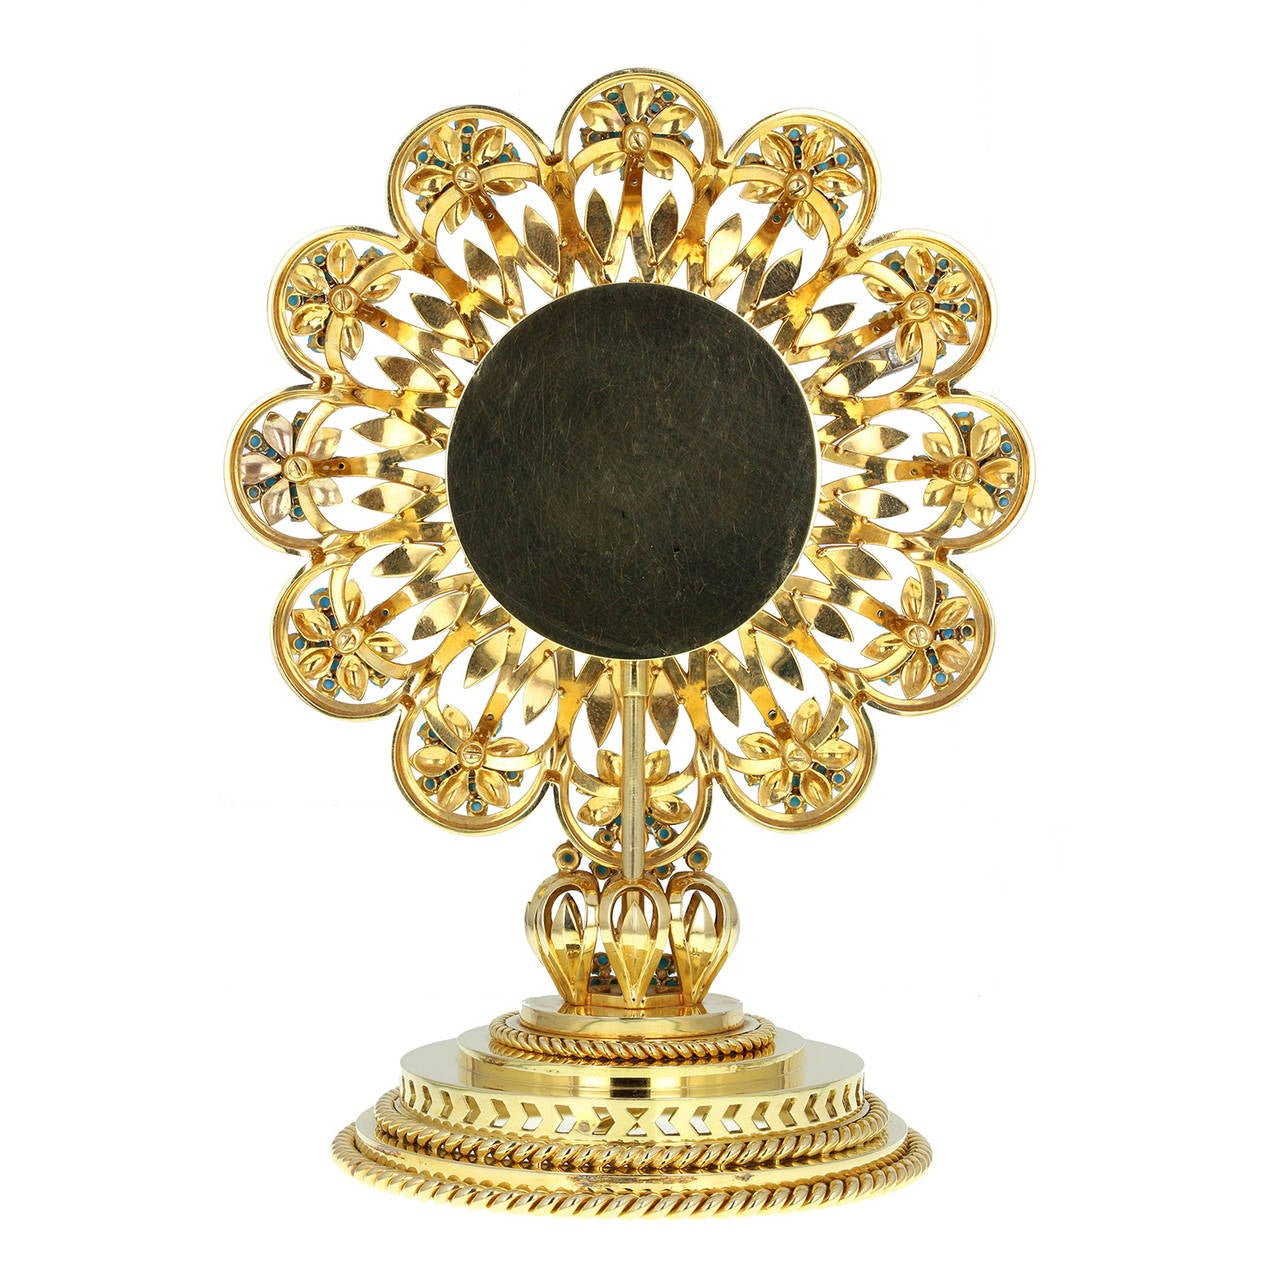 18ct gold in the form of a flower, the pierced dial set with turquoise beads forming the numerals, the hands set with diamonds, centred with sapphires and a garnet, on a pierced stem with rope-twist borders. French 3e titre post-1838, signed